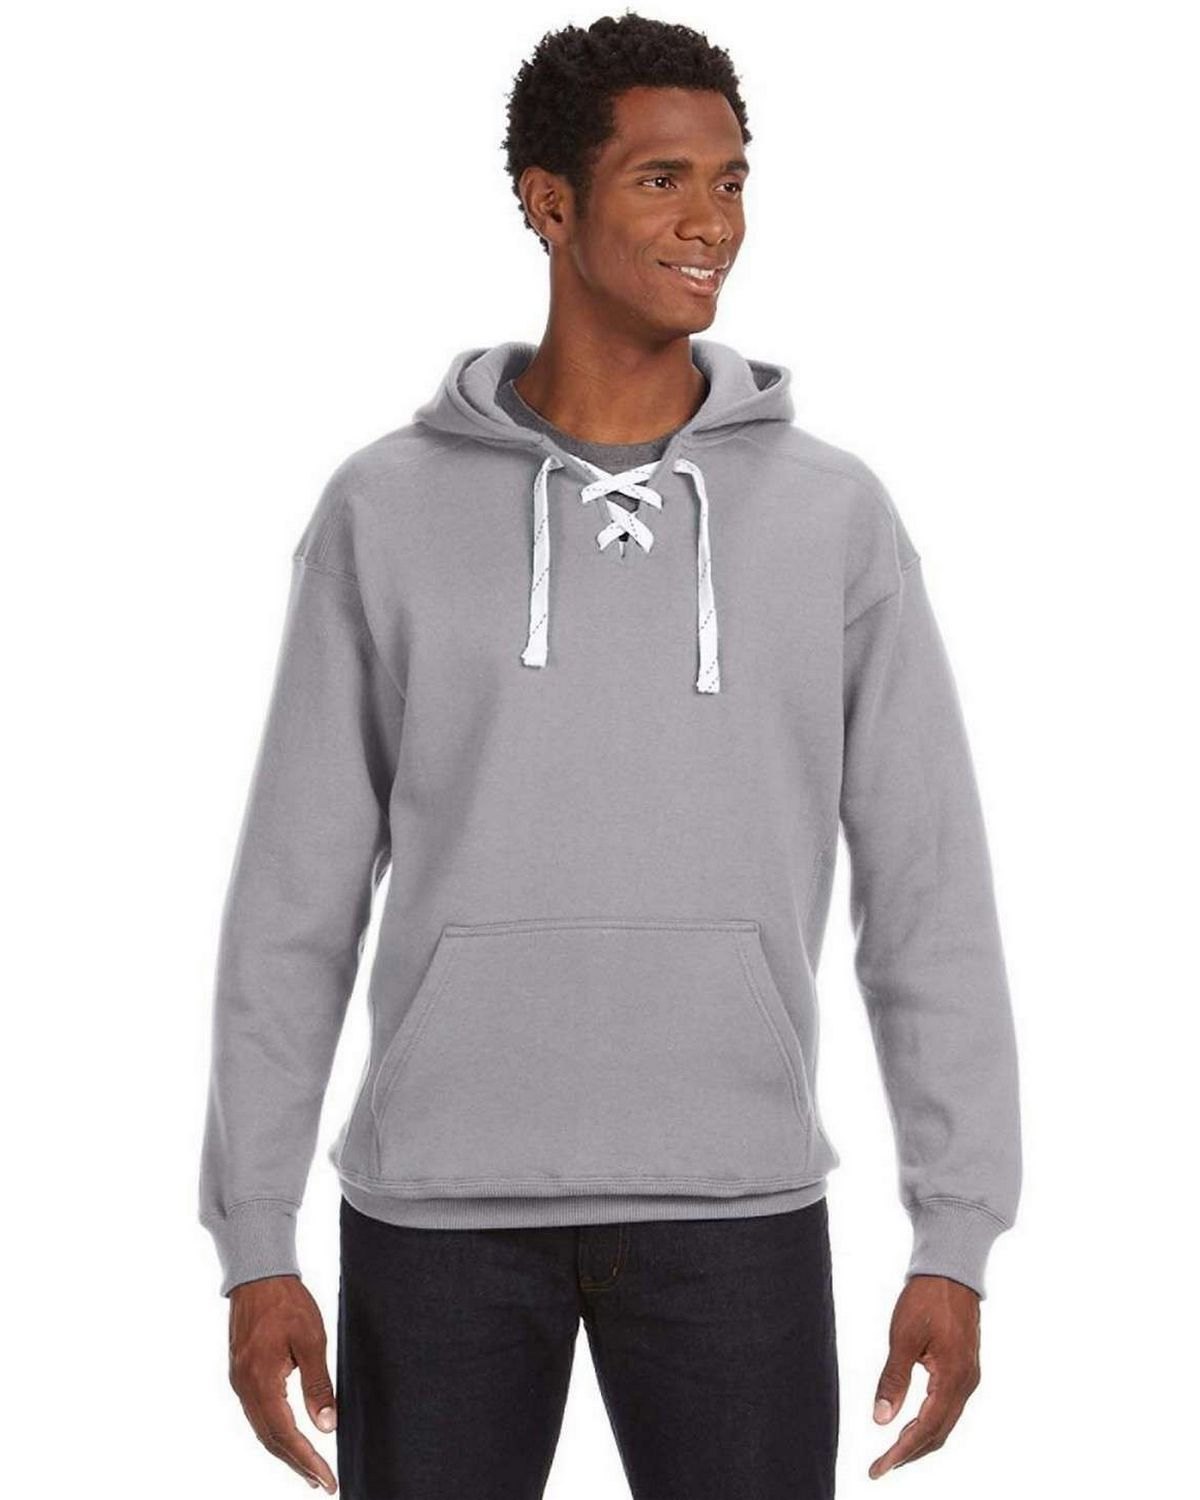 J America J8830 Hockey Hood SweatShirt - Oxford - S J8830